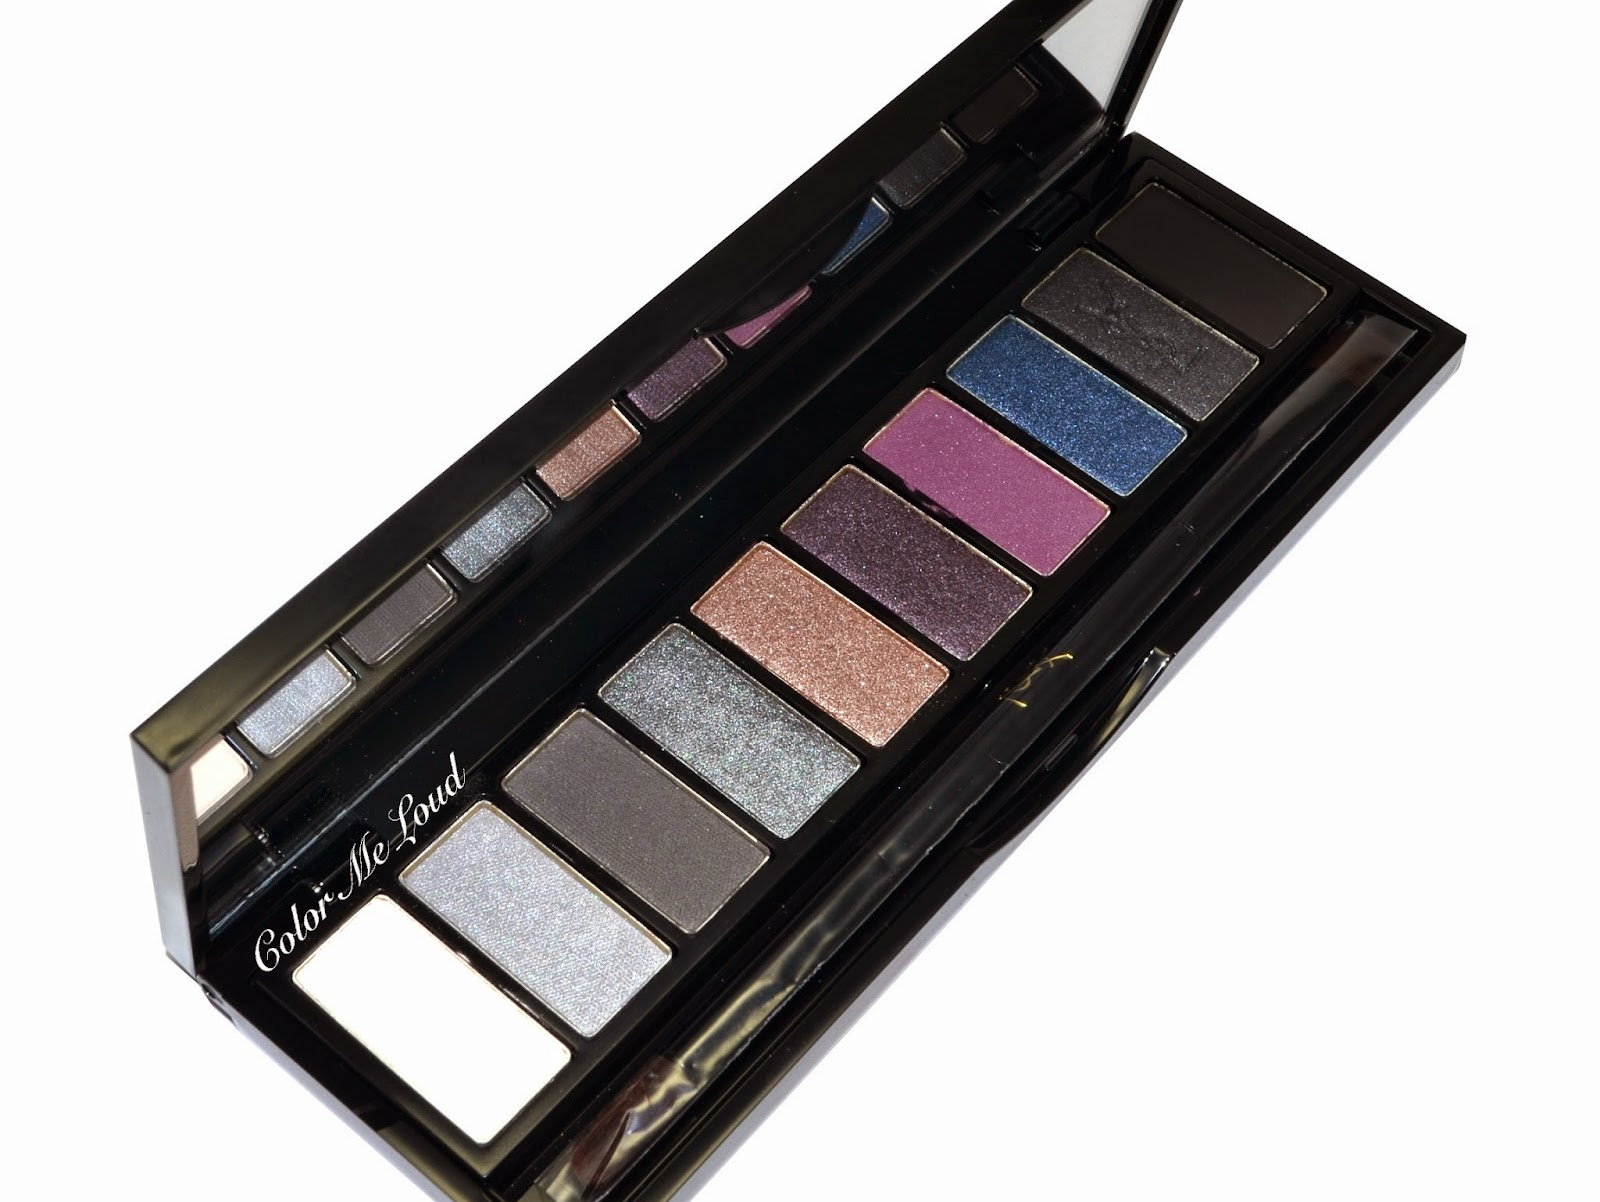 Ysl couture variation 10 color eye palette 2 tuxedo review ysl couture variation 10 color eye palette 2 tuxedo ccuart Gallery